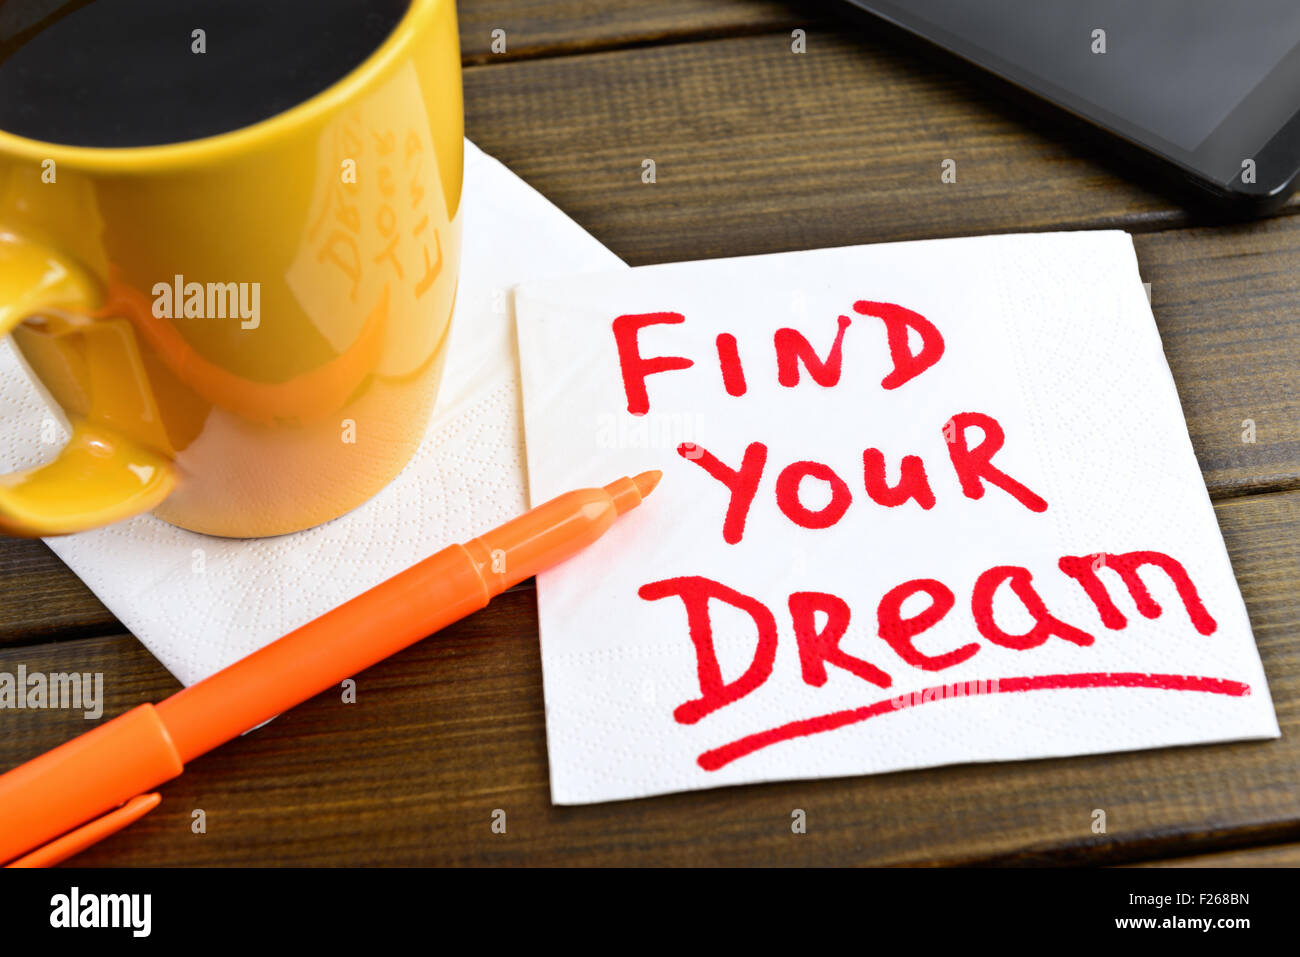 Find your dream - motivational handwriting on a napkin with a cup of coffee and phone - Stock Image